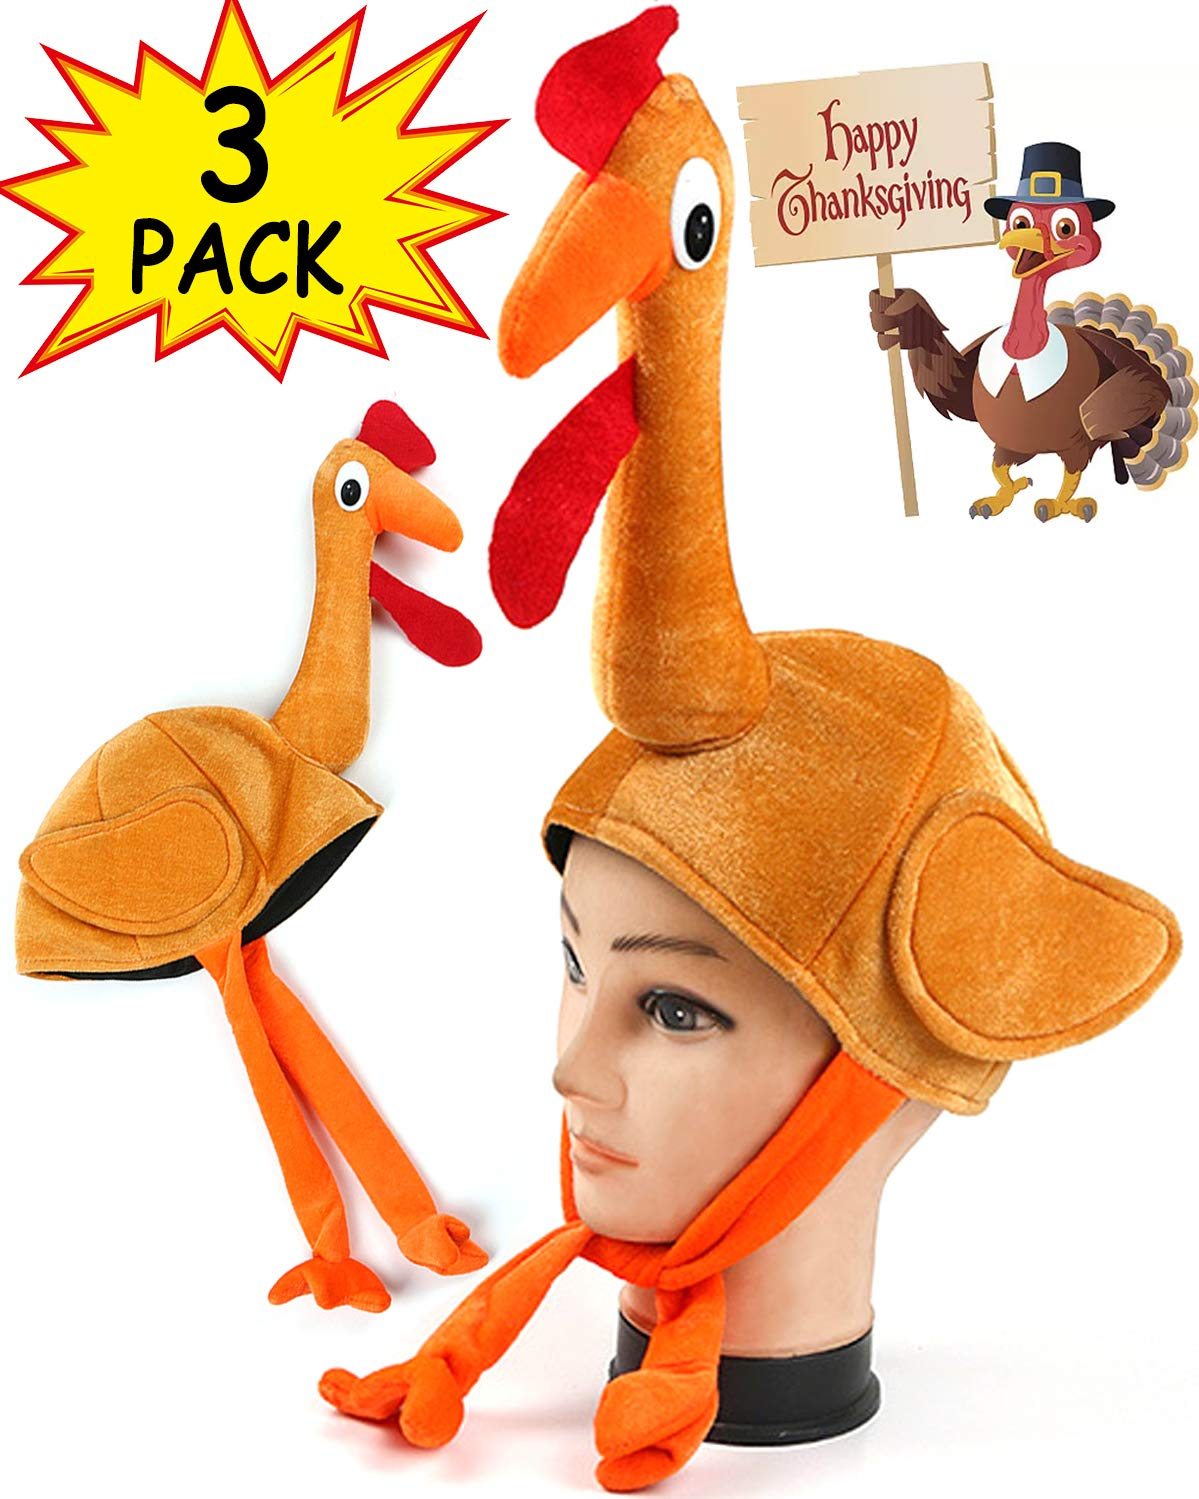 3 Pack Thanksgiving Turkey Hats With Head Unisex Funny Novelty Plush for Festival Accessories Thanksgiving Party Favors Supplies Fun Plump Halloween Costume Accessory Holiday Gift by TURNMEON